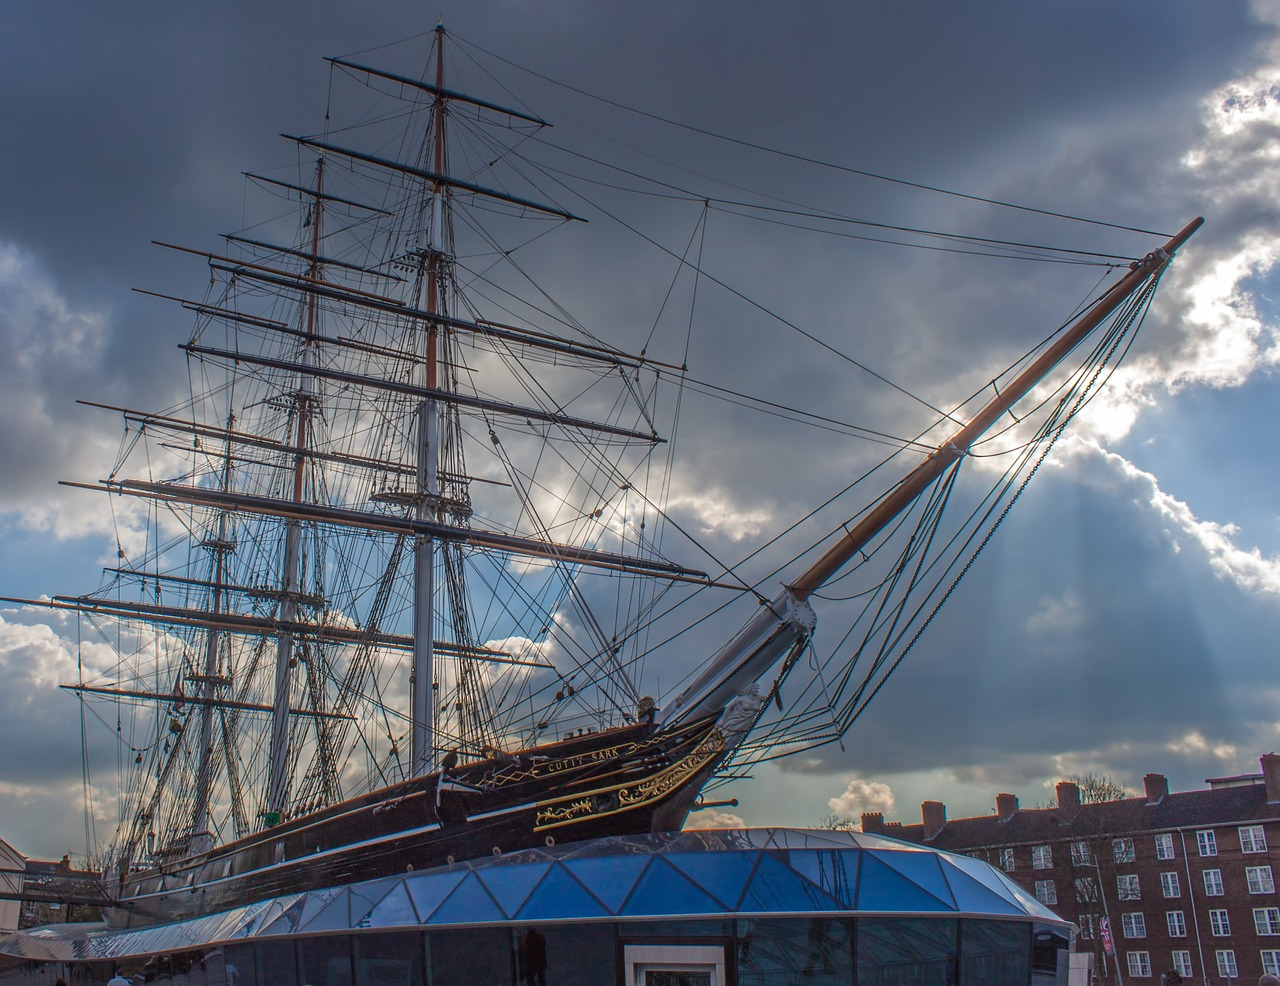 Cutty Sark by jeffwallis on Pixabay